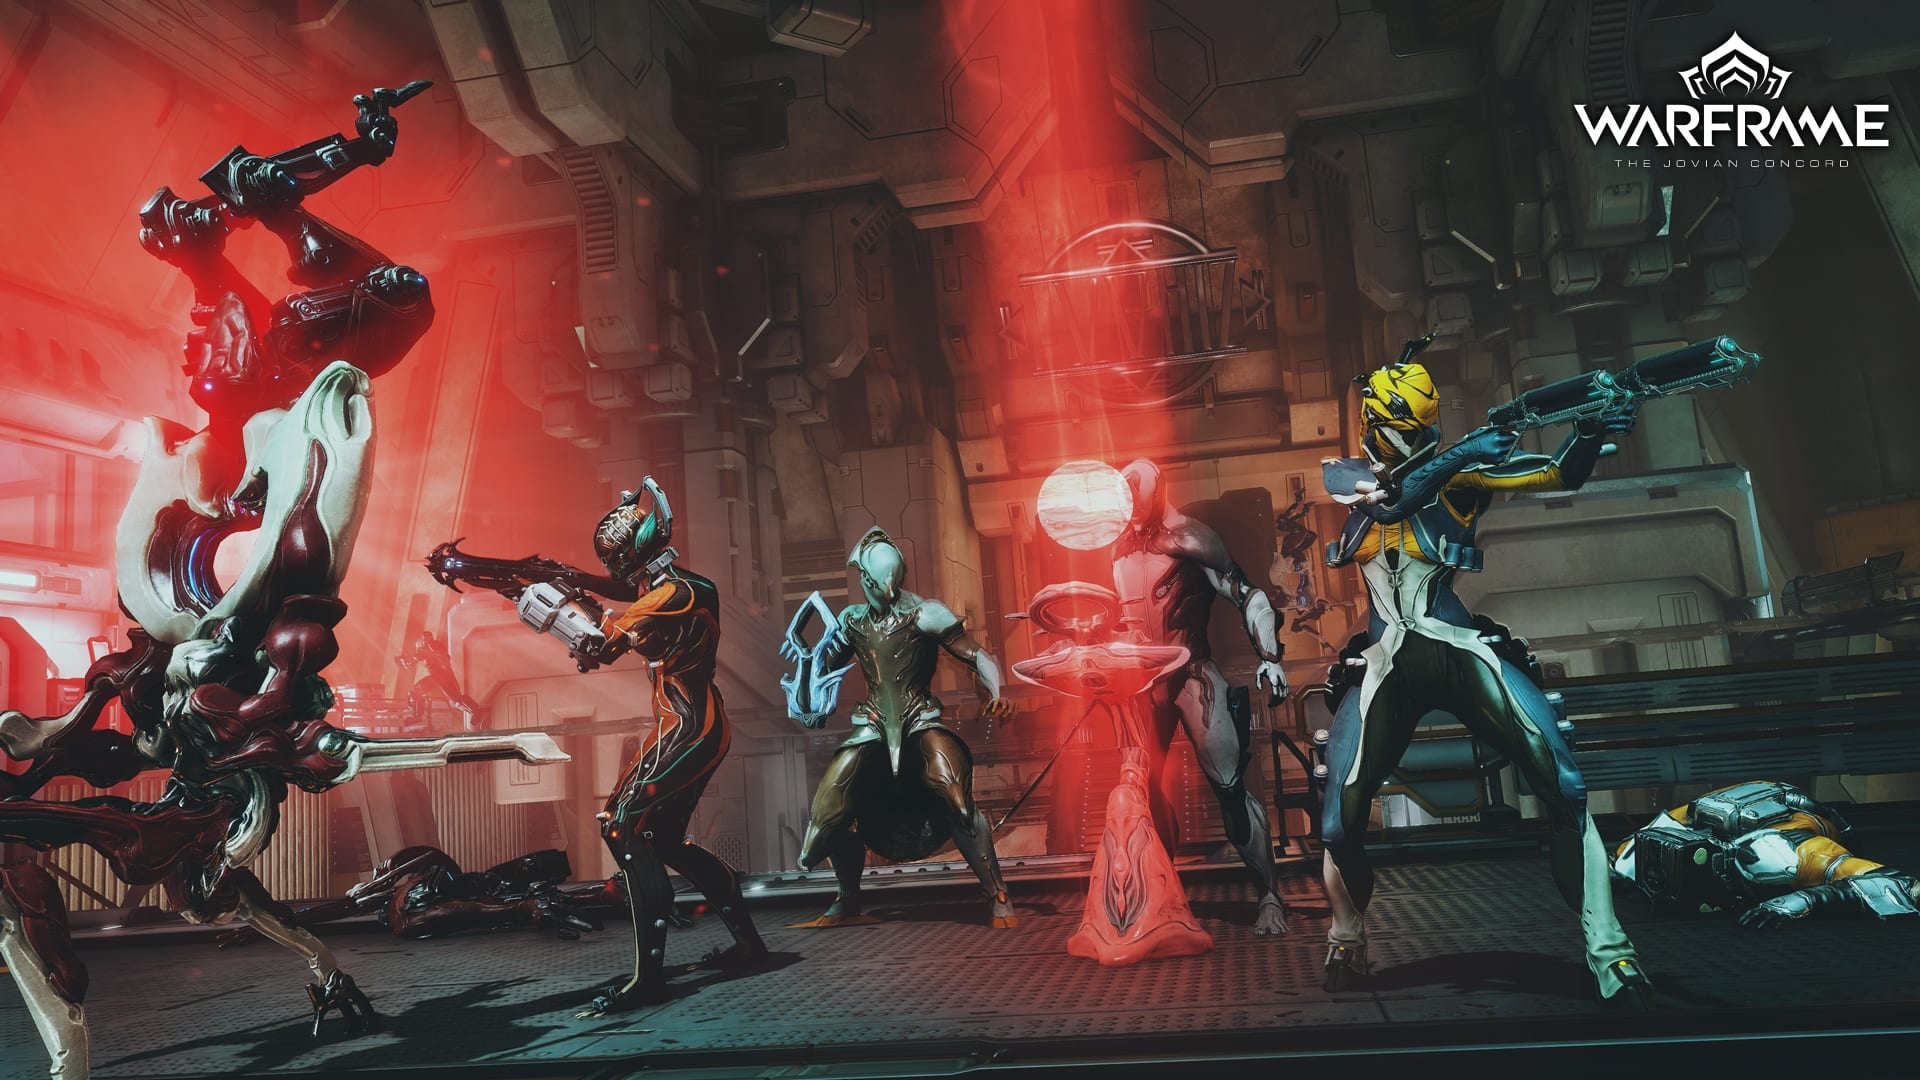 Warframe – The Jovian Concord update arrives next week with